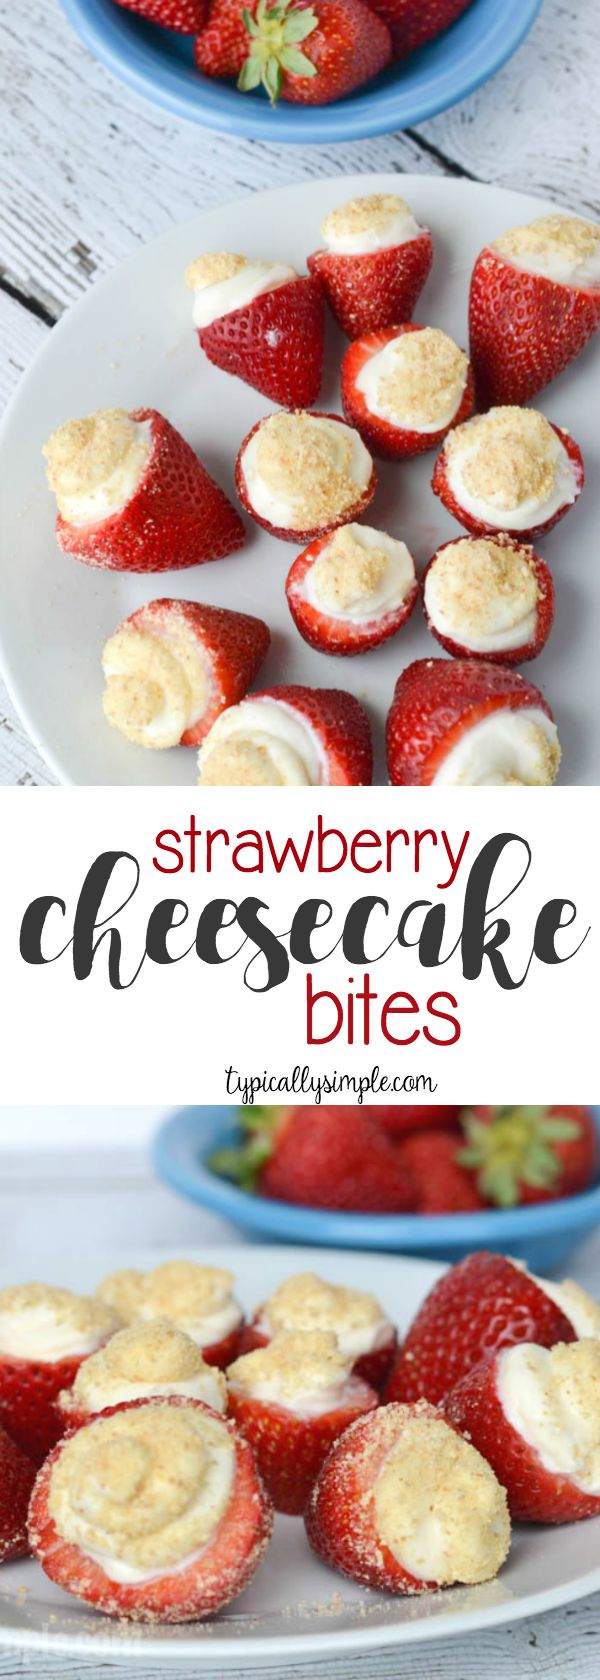 These no bake strawberry cheesecake bites are so simple, but so delicious and make a great dessert at parties or when you have the taste for a sweet treat!